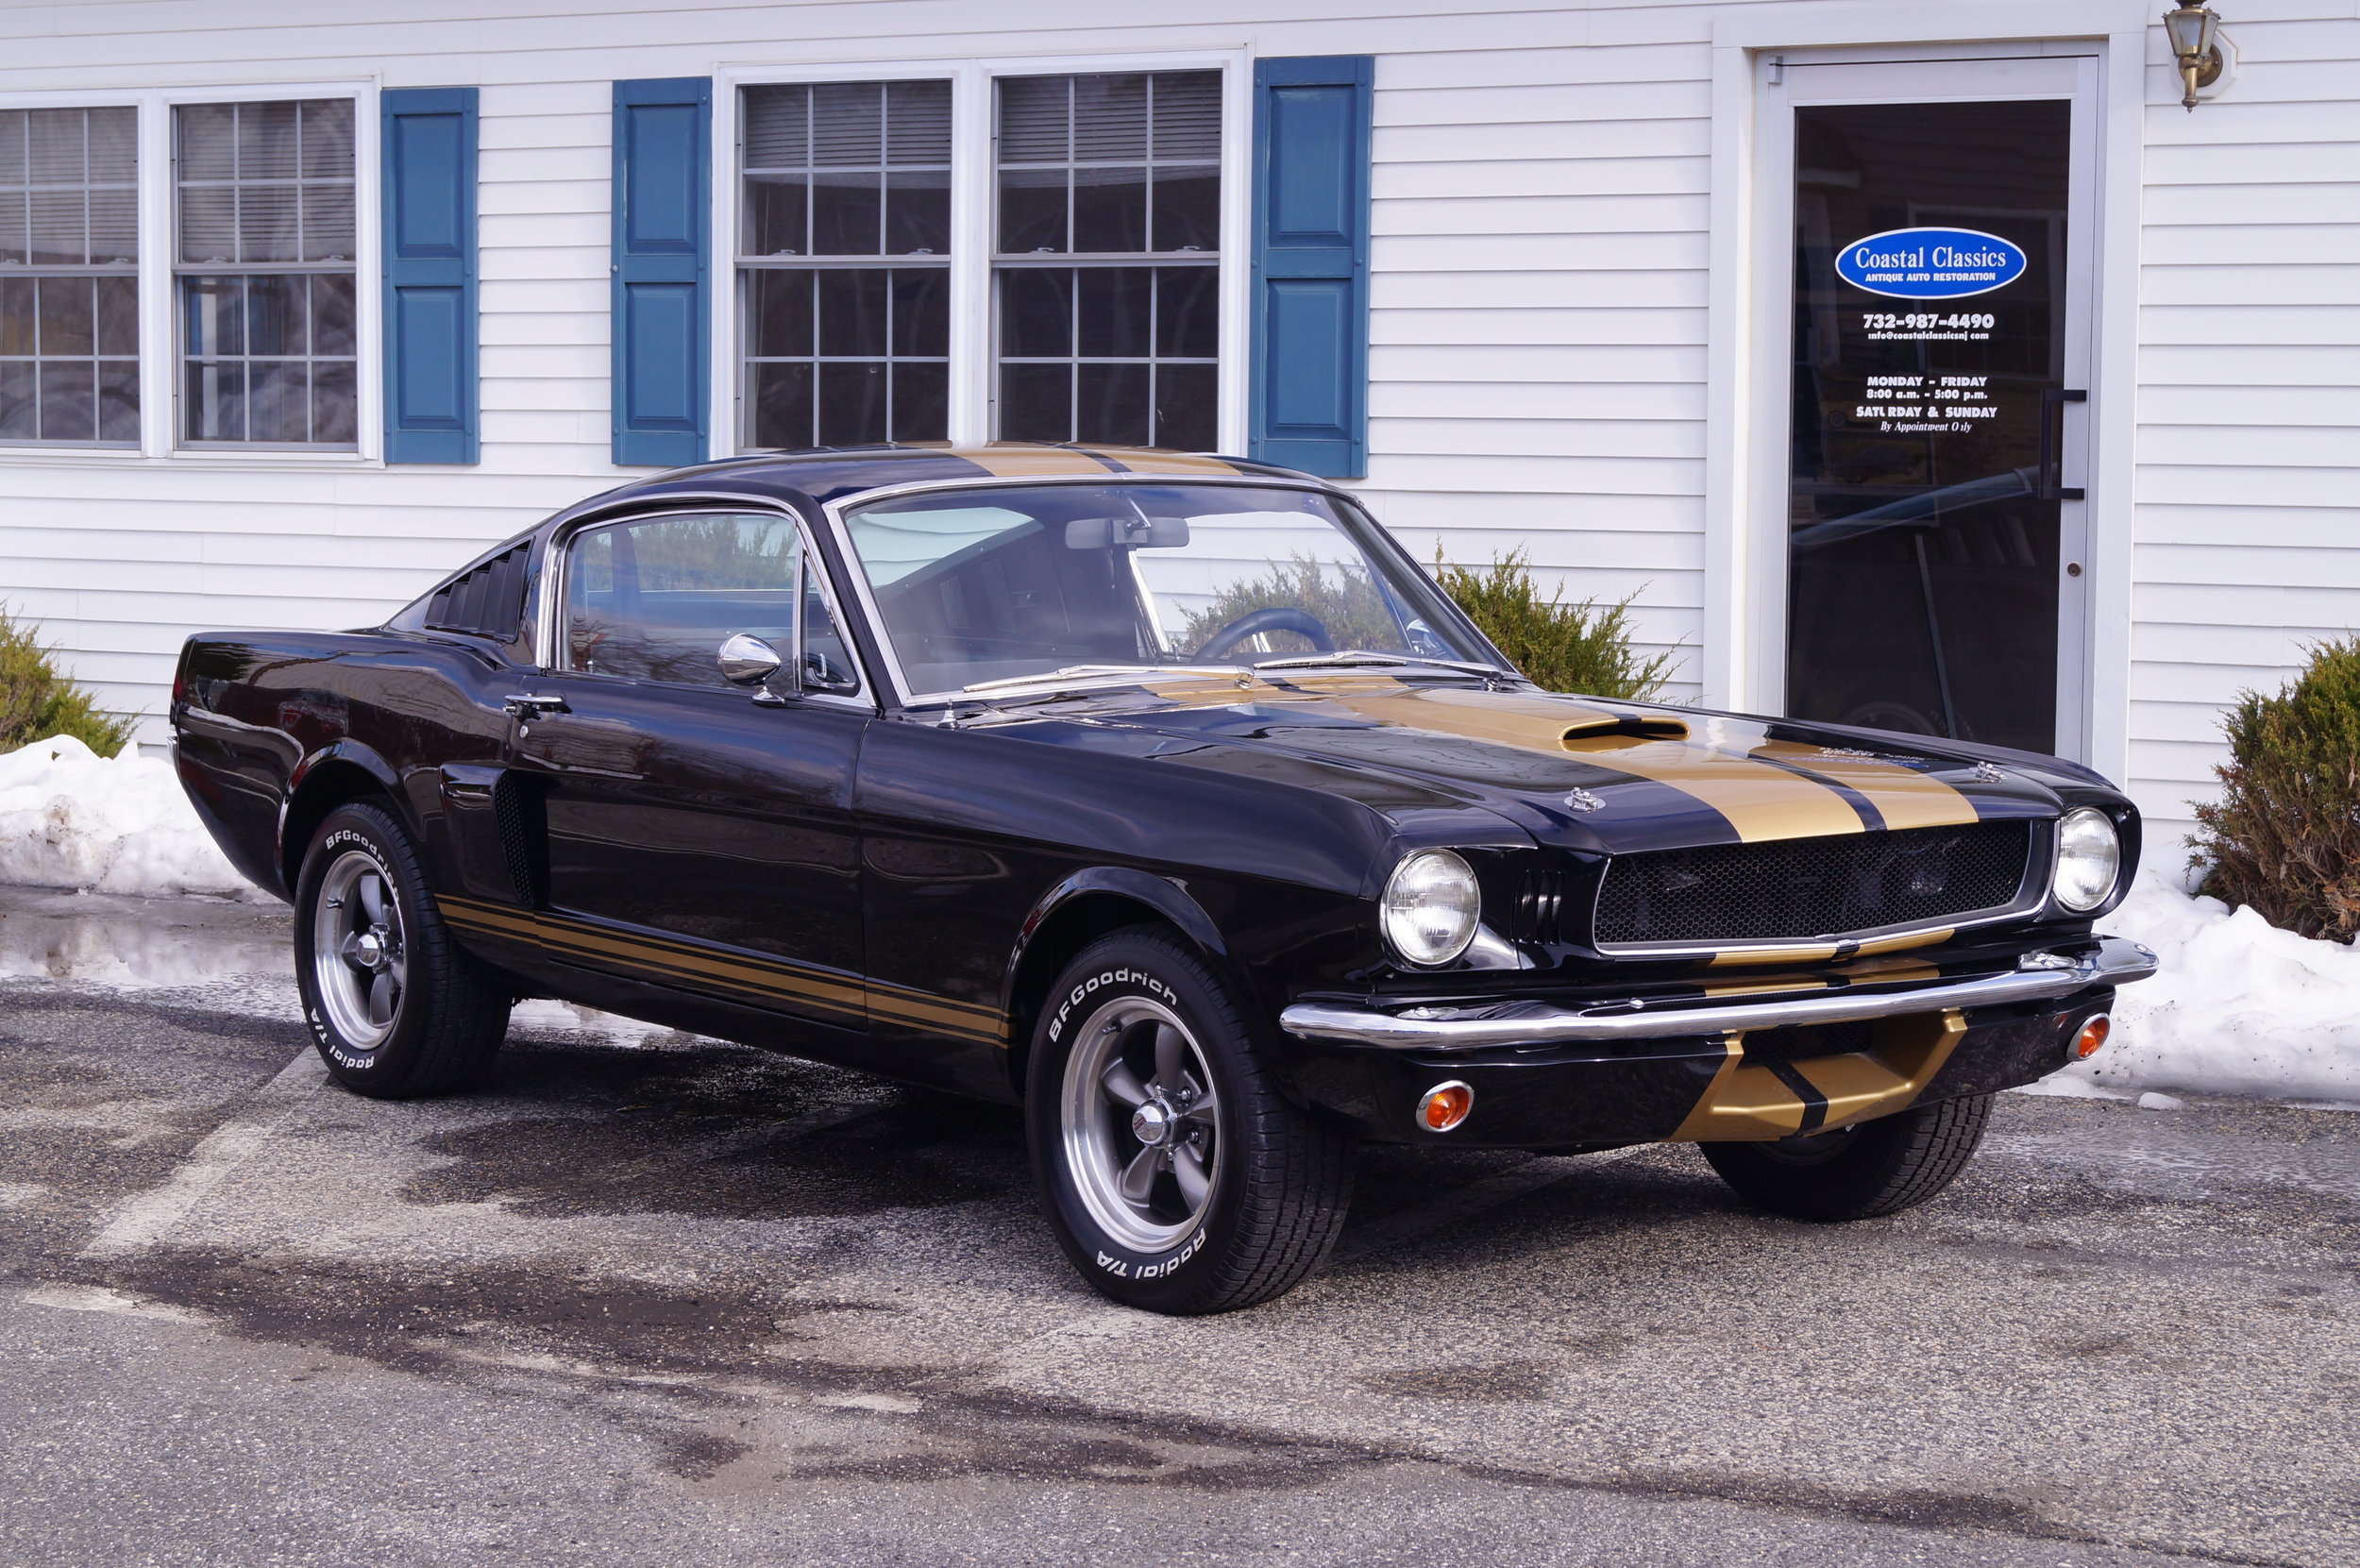 1965 Shelby Mustang GT350H Tribute